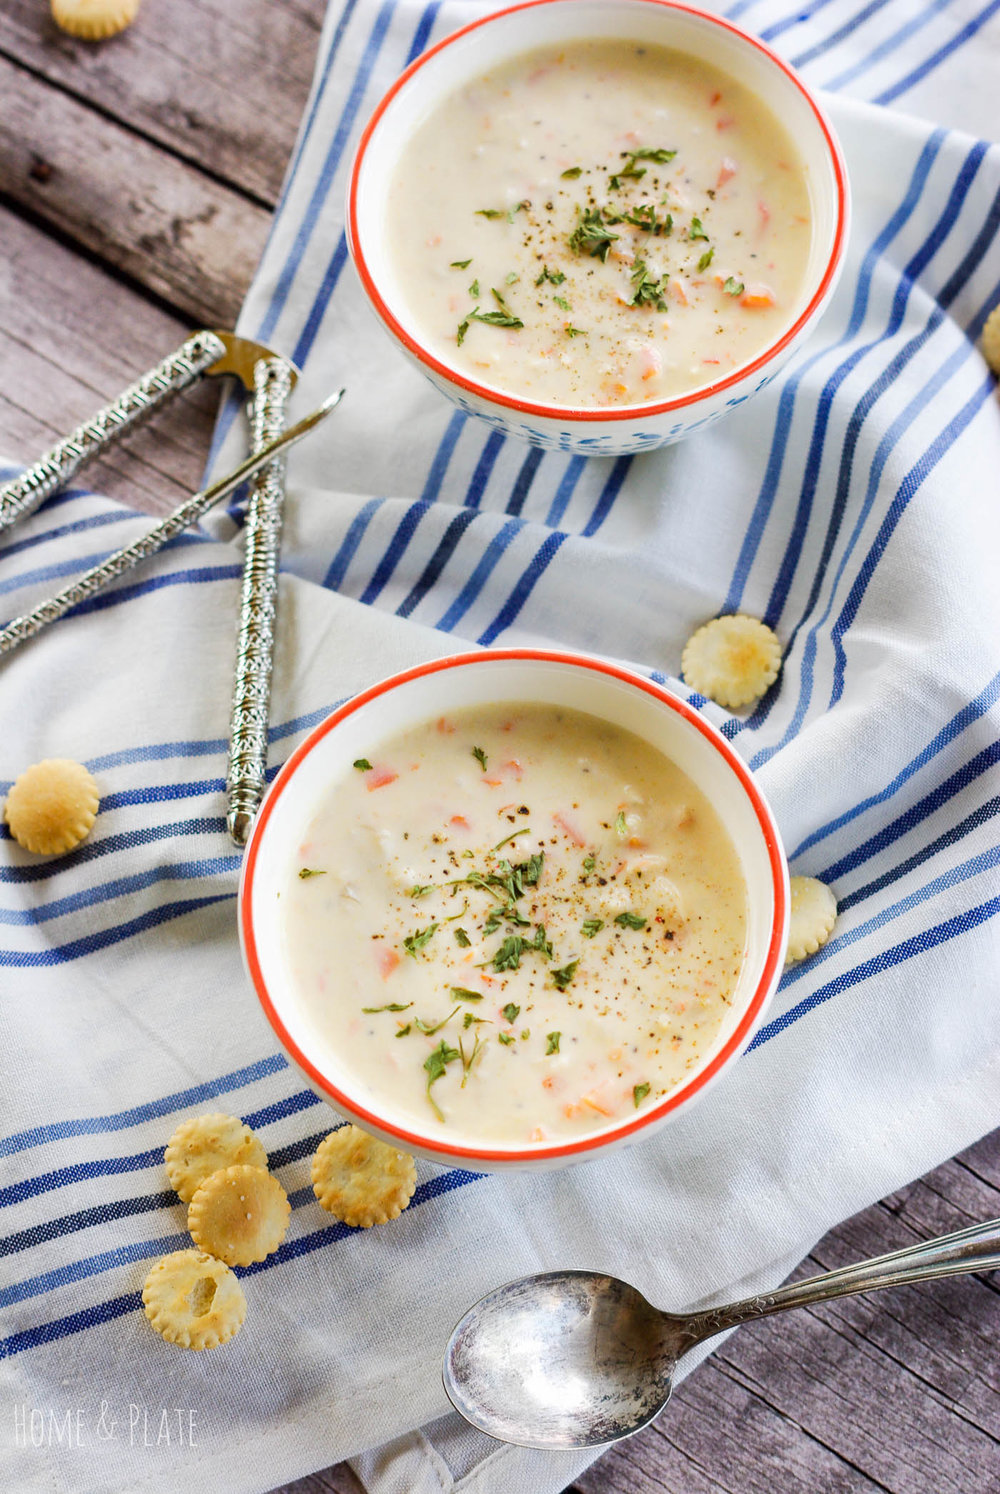 Creamy Crab Bisque | www.homeandplate.com | Rich and creamy crab bisque made with chunks of freshly cracked Alaskan King crab meat can be on your table in 30 minutes.